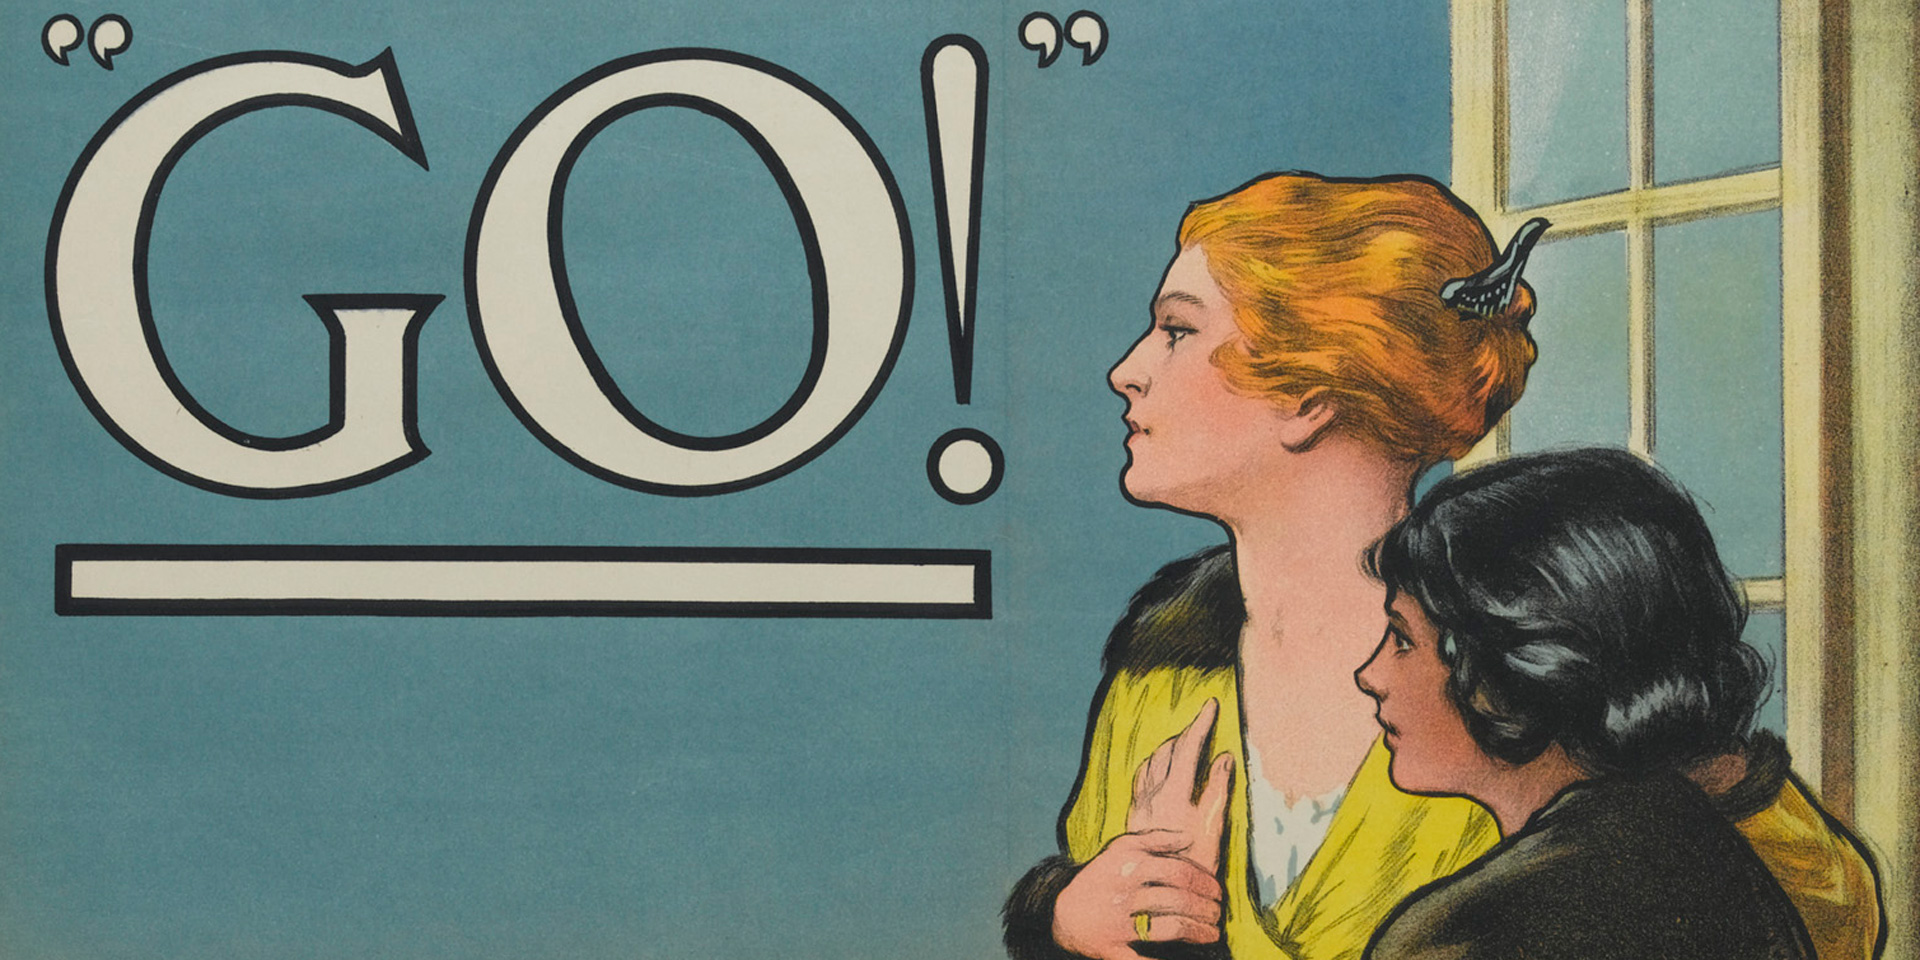 'Women of Britain Say - Go!' recruiting poster, 1915